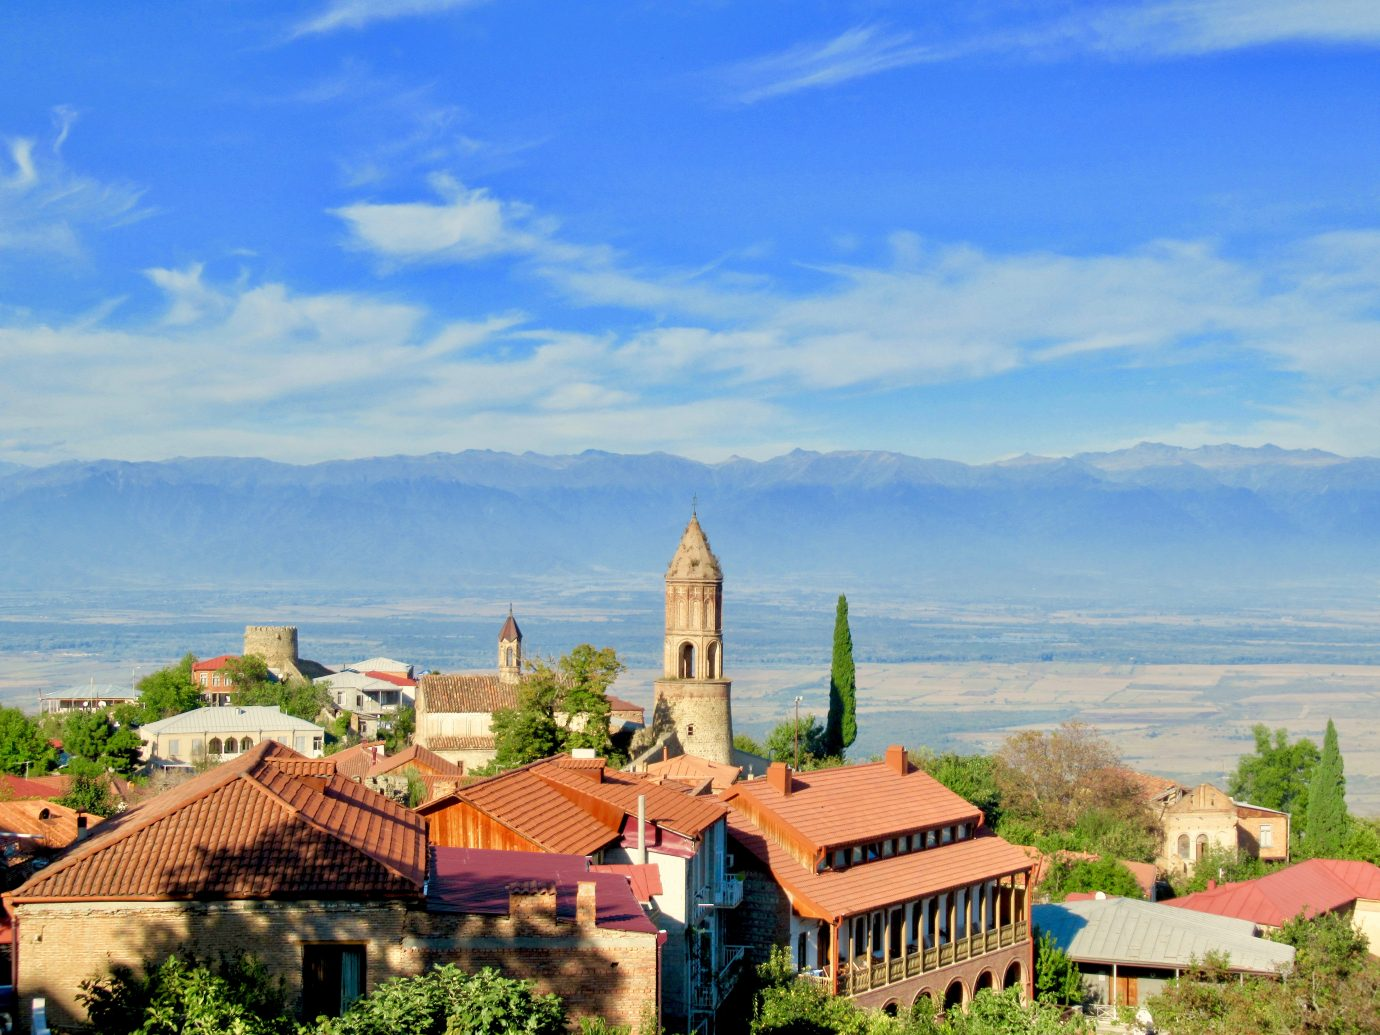 Rooftop views of Sighnaghi with mountains in the background